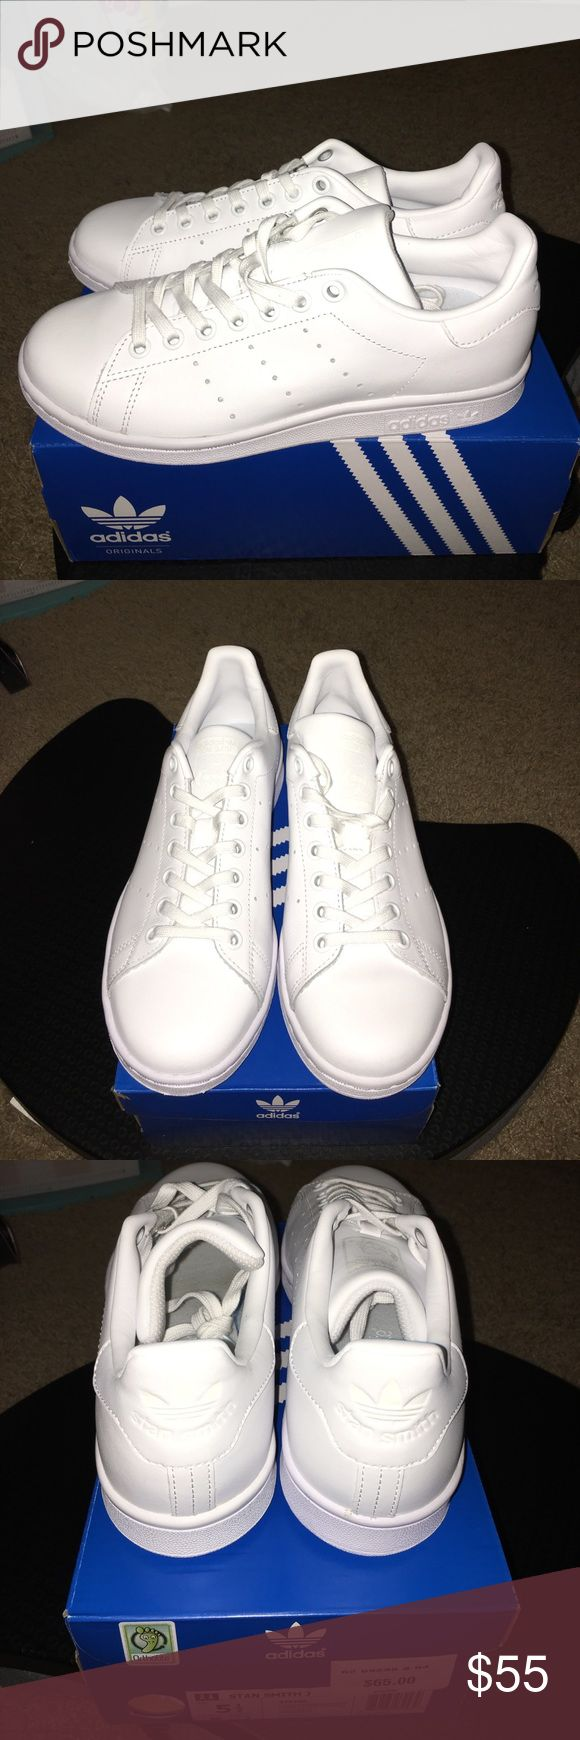 All white Adidas Stan Smiths Brand new all white stan smiths in men sizes 5.5, fits women's size 6. In brand new condition and never worn, comes with box. adidas Shoes Sneakers